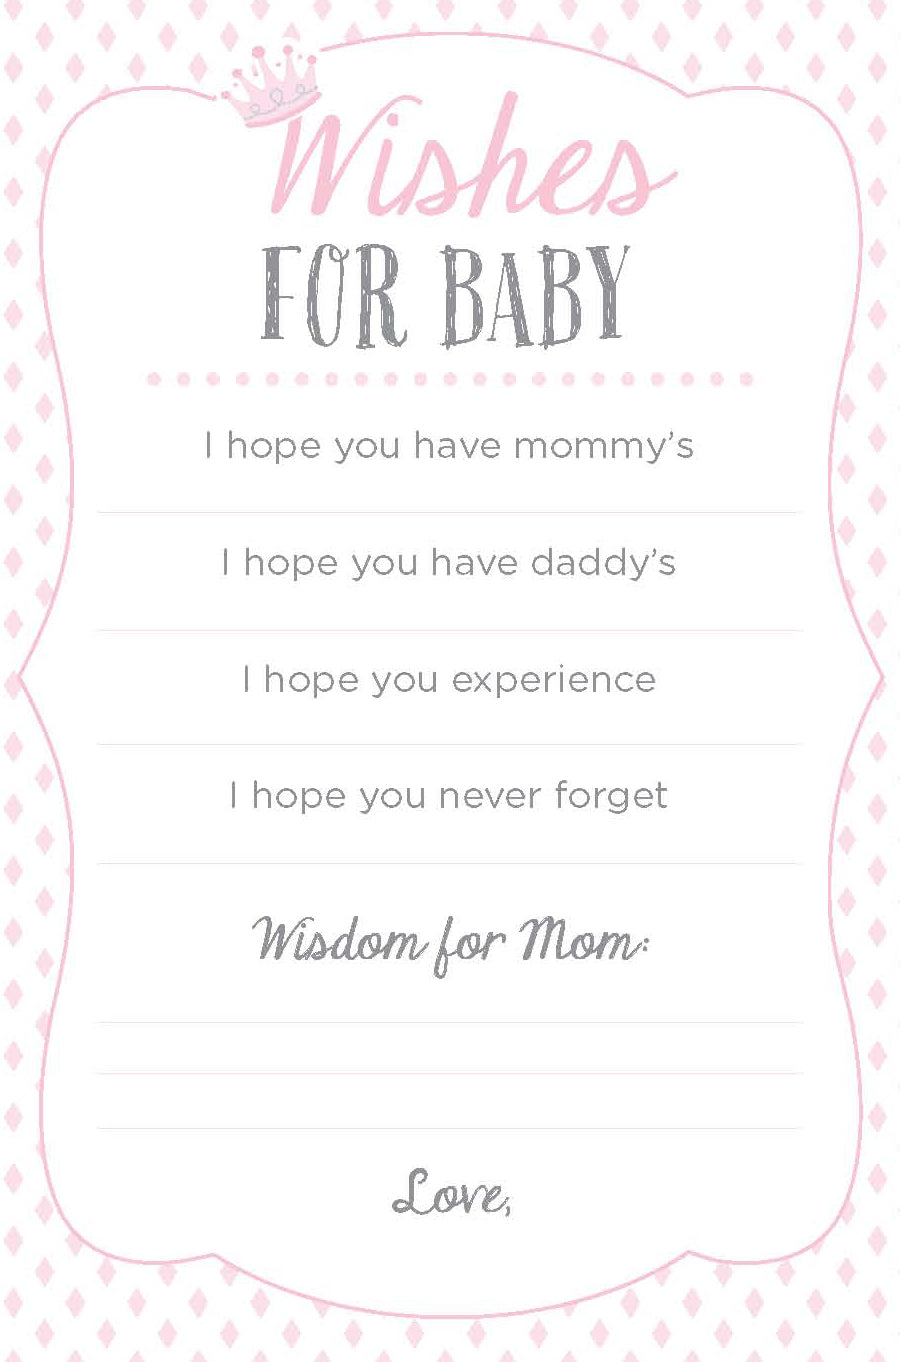 Wishes for Baby Printable - Pink | 3 Baby Shower Games We Love | Baby Aspen